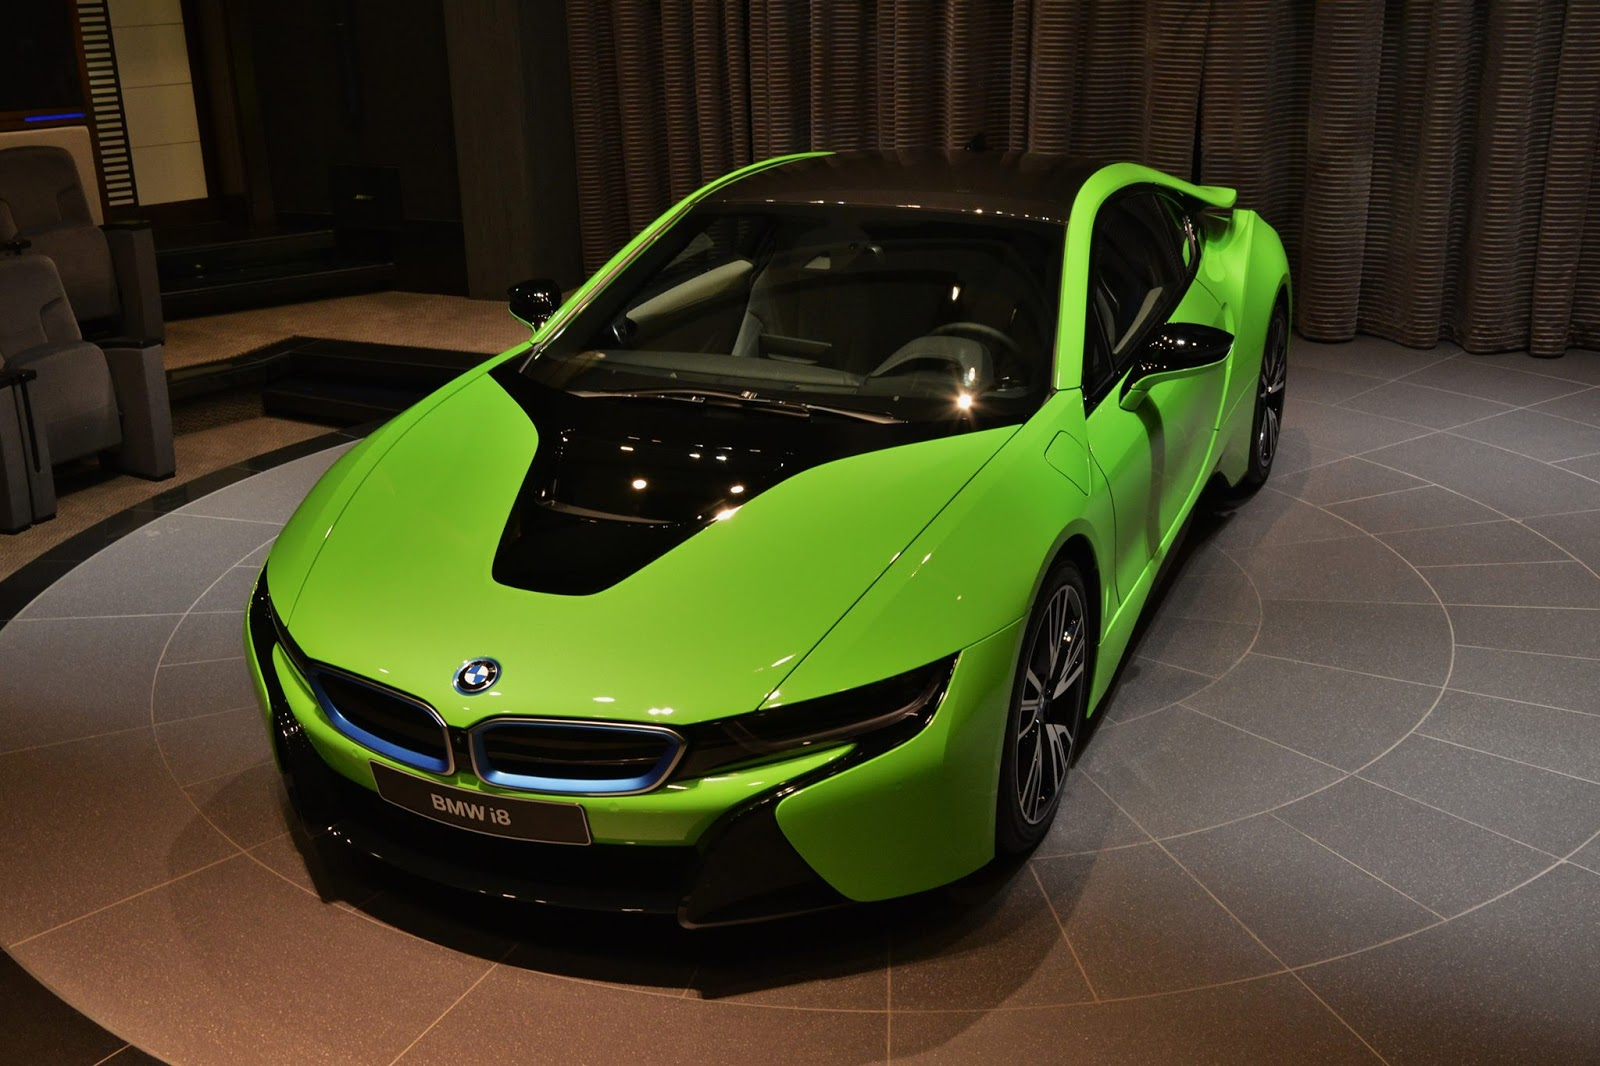 Ever Seen a Lime Green BMW i8 Before? | Carscoops